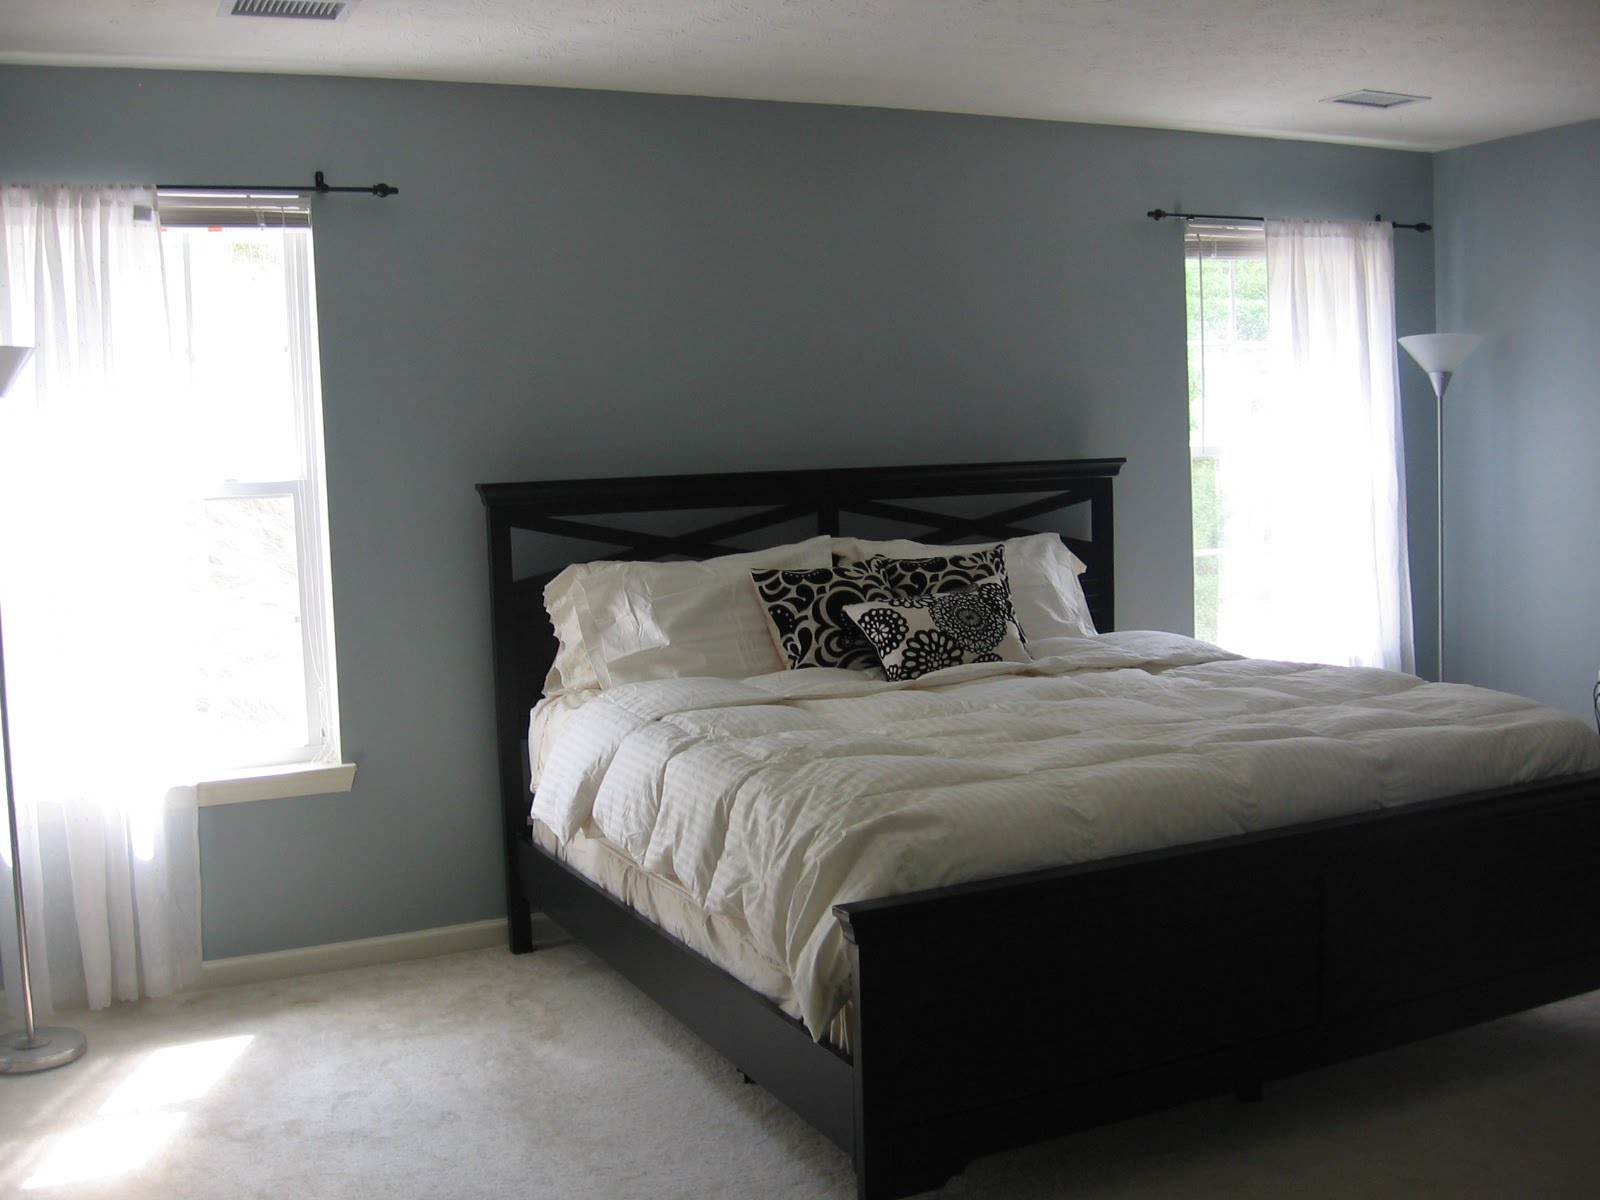 Bedroom Colors Grey grey paint colors for bedroom - large and beautiful photos. photo to